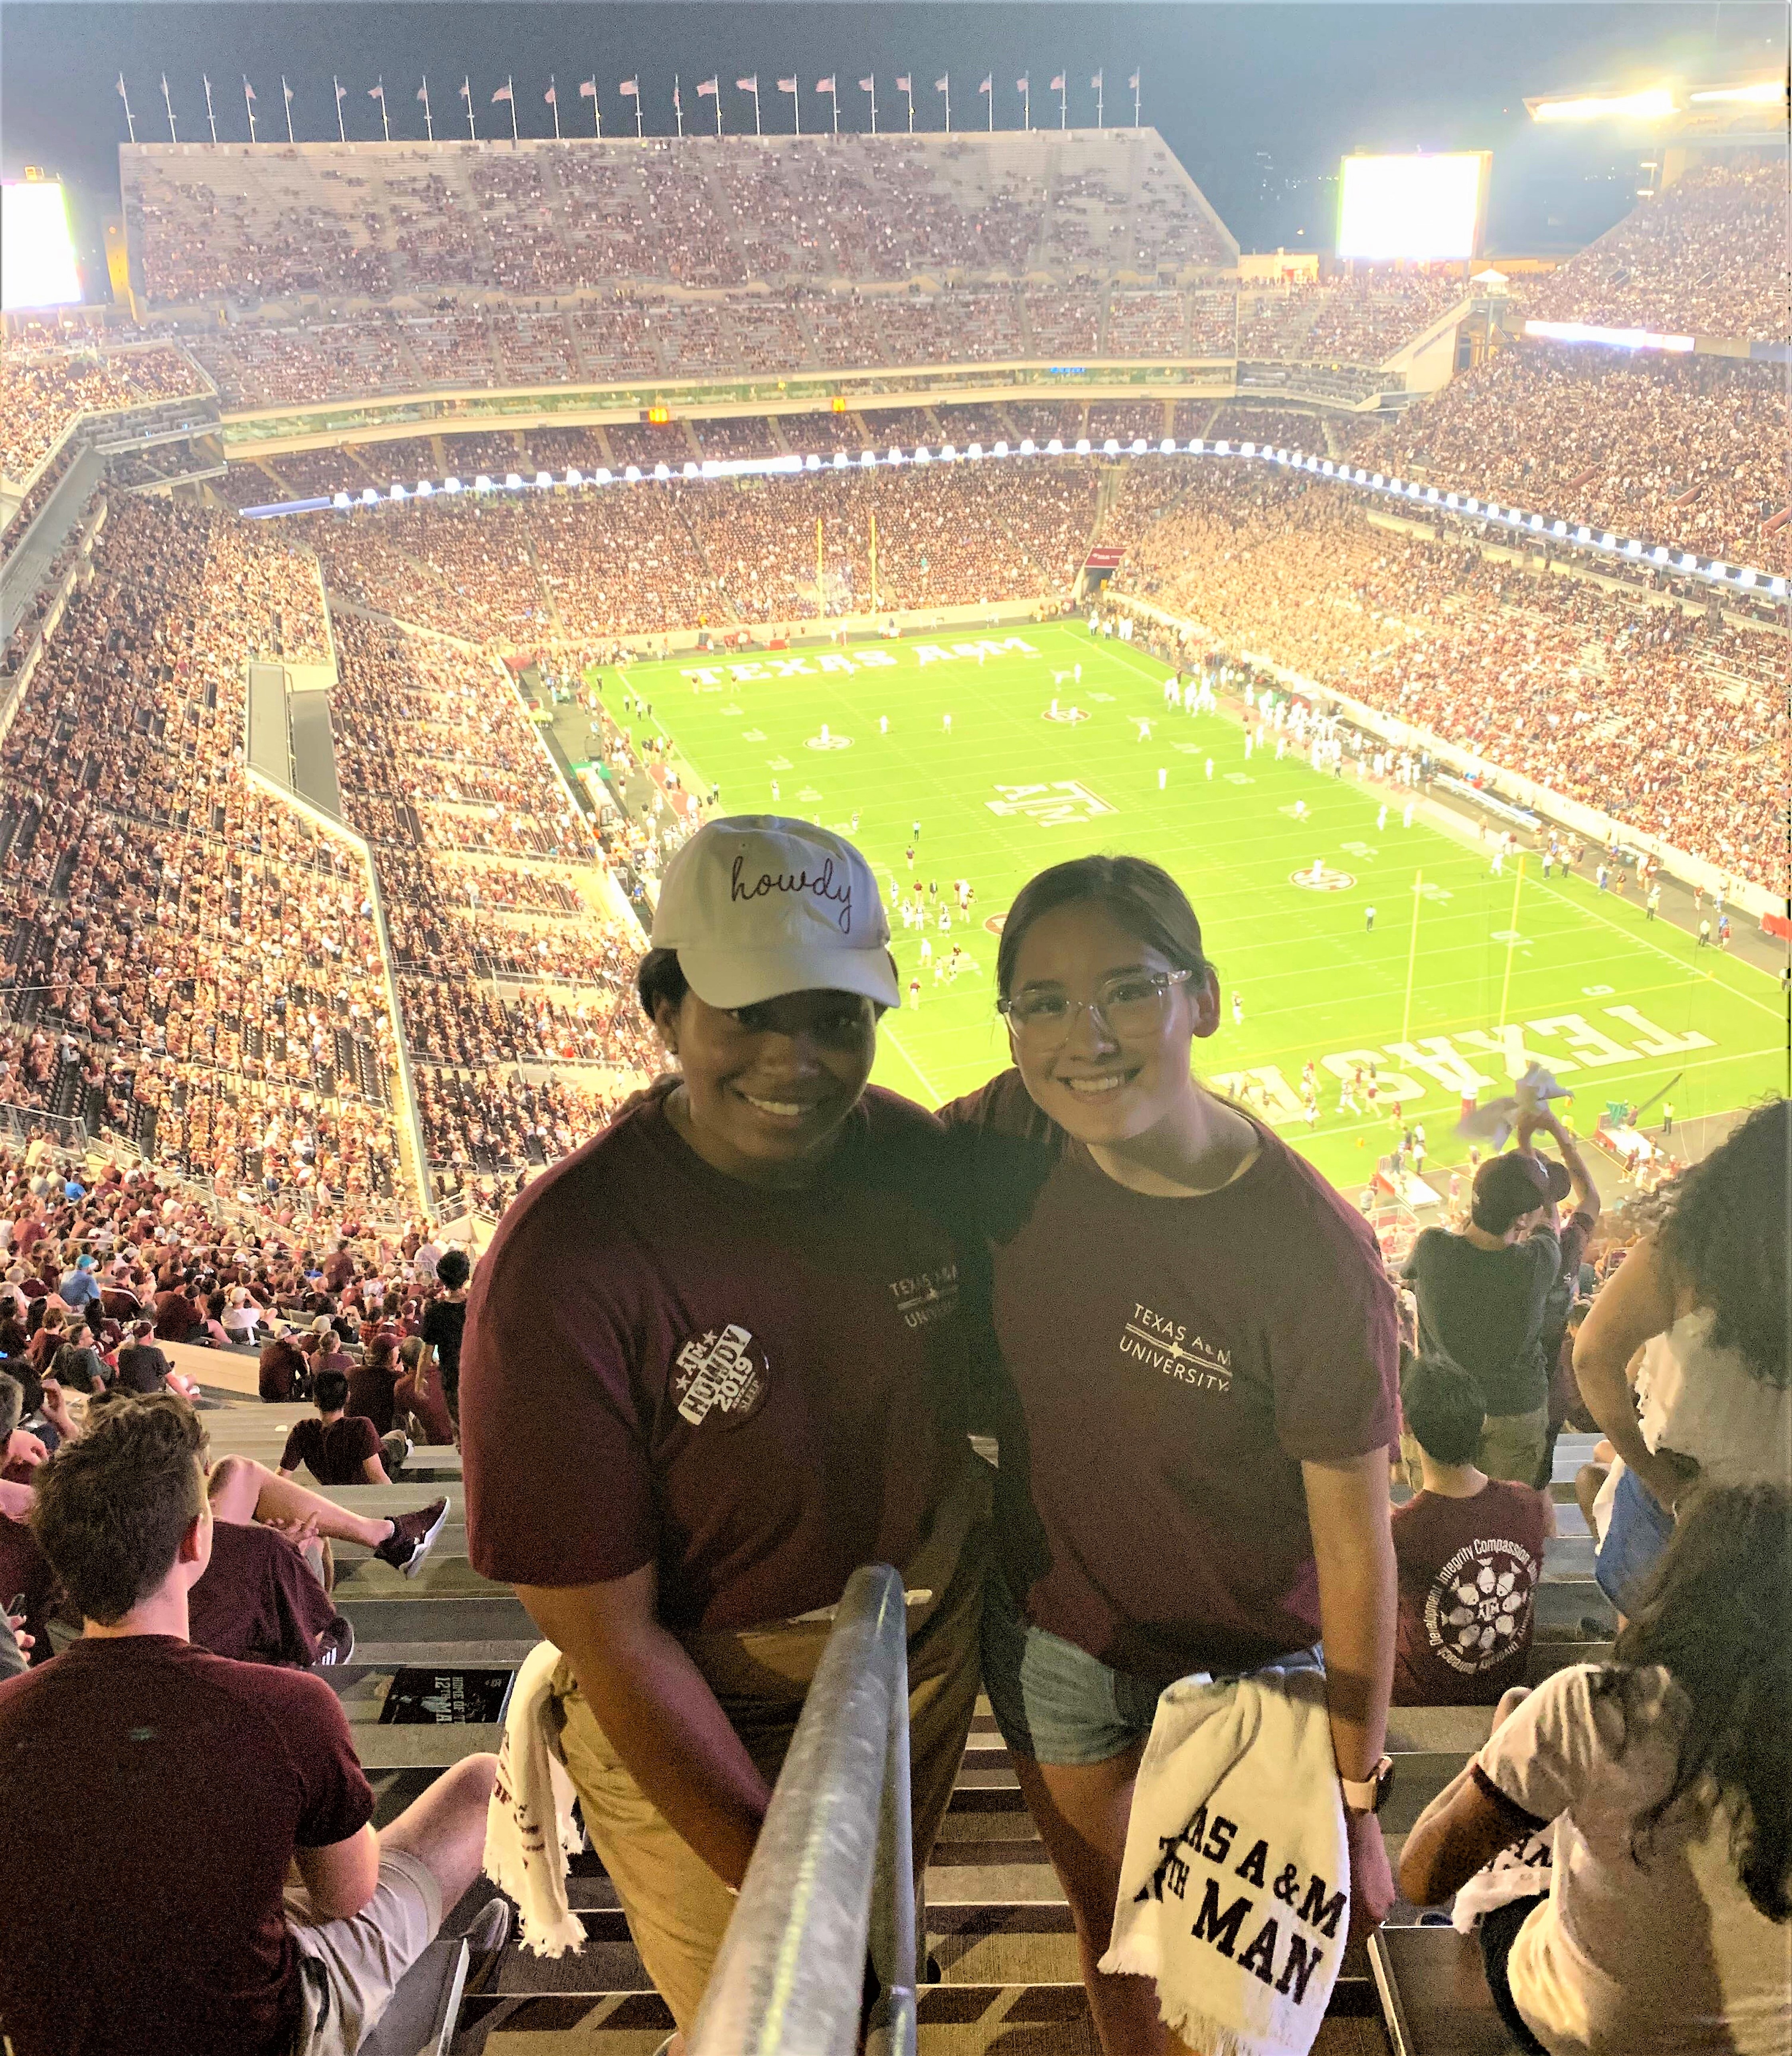 Angie (right) attends a football game at Texas A&M University at College Station, where she is a sophomore. Photo courtesy of Gay Ingram.